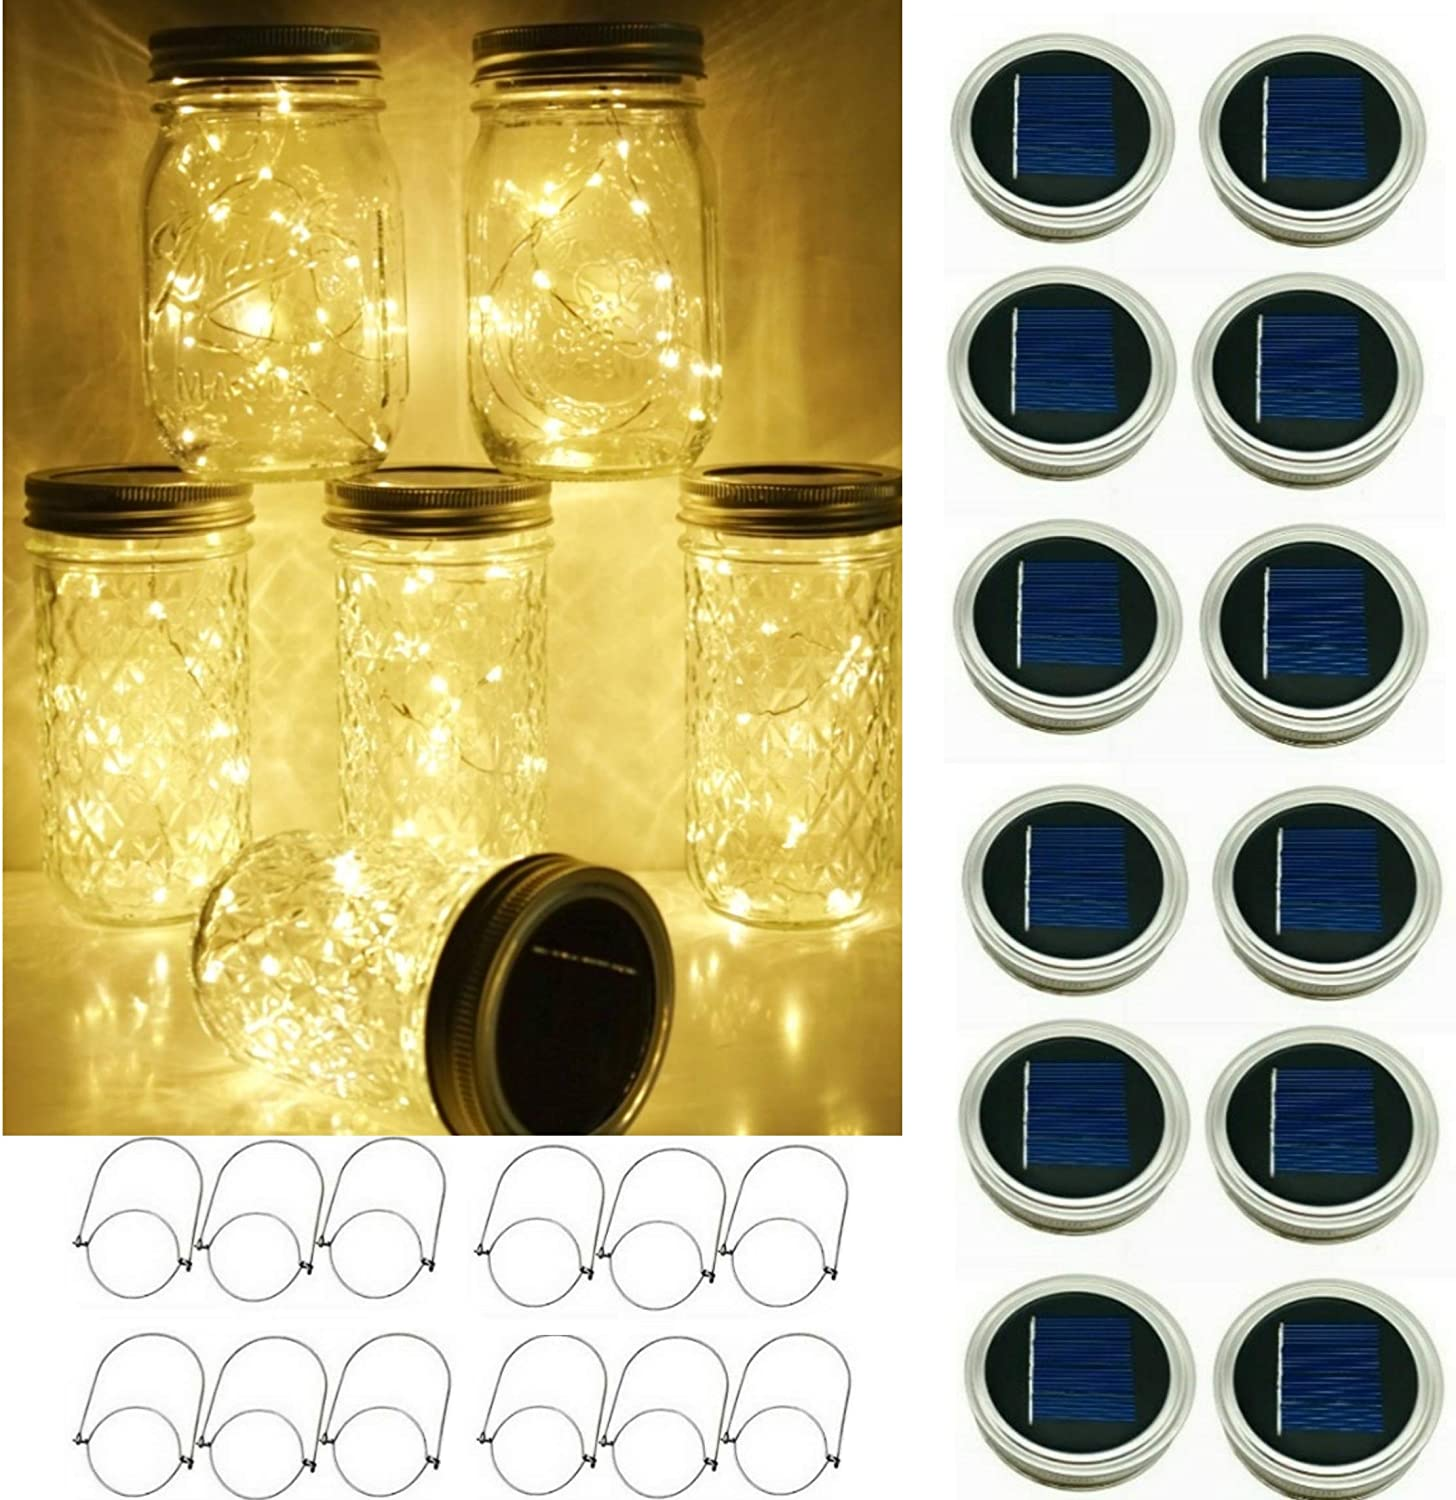 SmilingTown Solar Mason Jar String Light Lids, 12 Pack 30 LED Jar Fairy Firefly Inserts Lighting with 12 Hangers for Outdoor Patio Lawn Garden Decor, No Jars